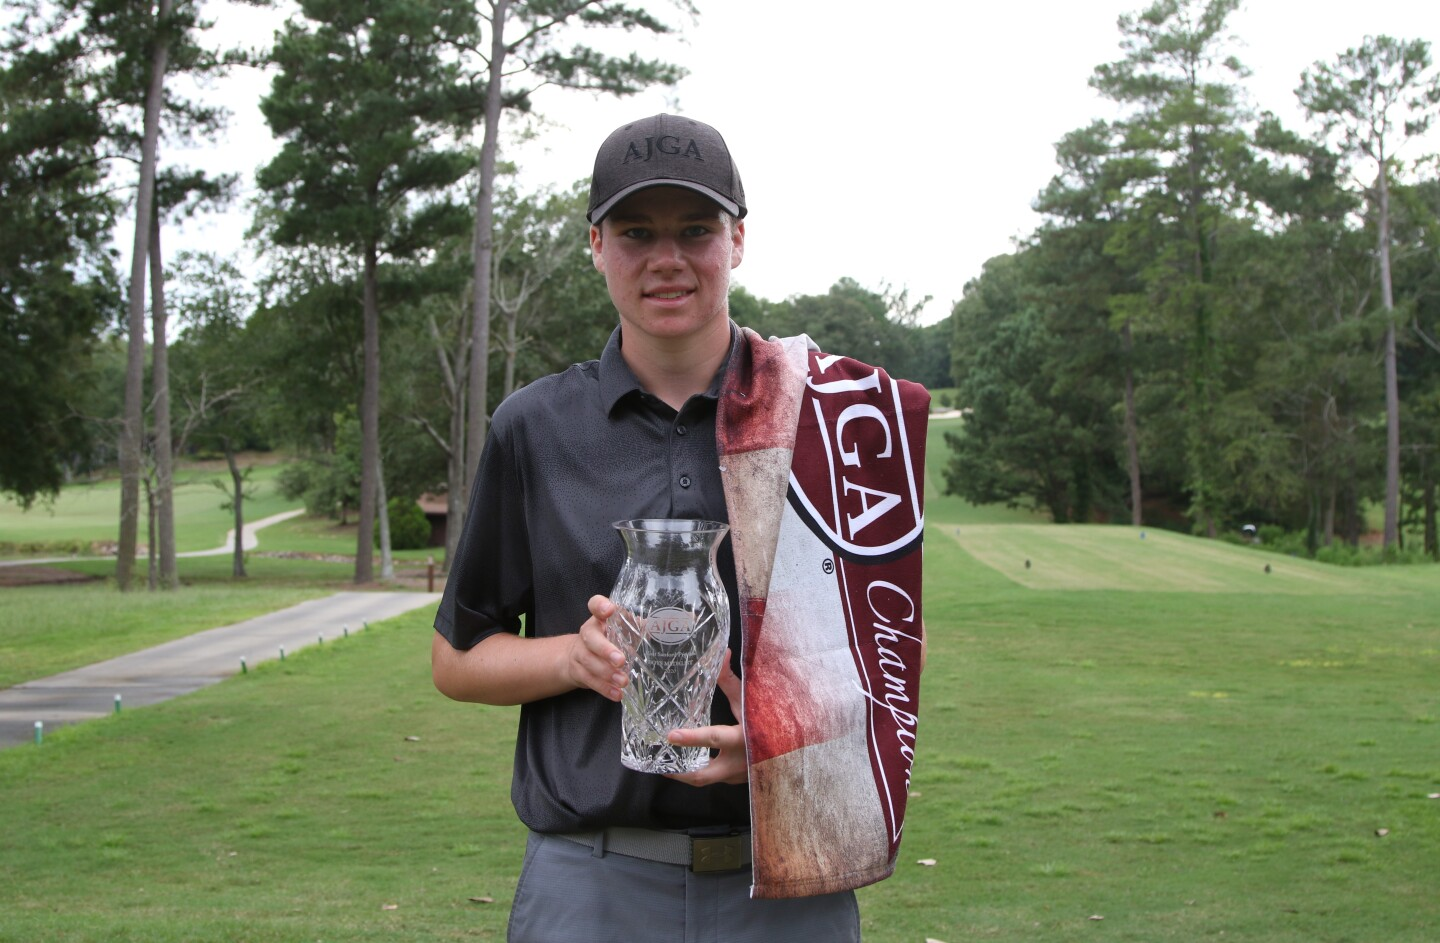 Keenan Royalty First Place Medalist with champion towel - 2020 - Visit Sanford Preview.jpg